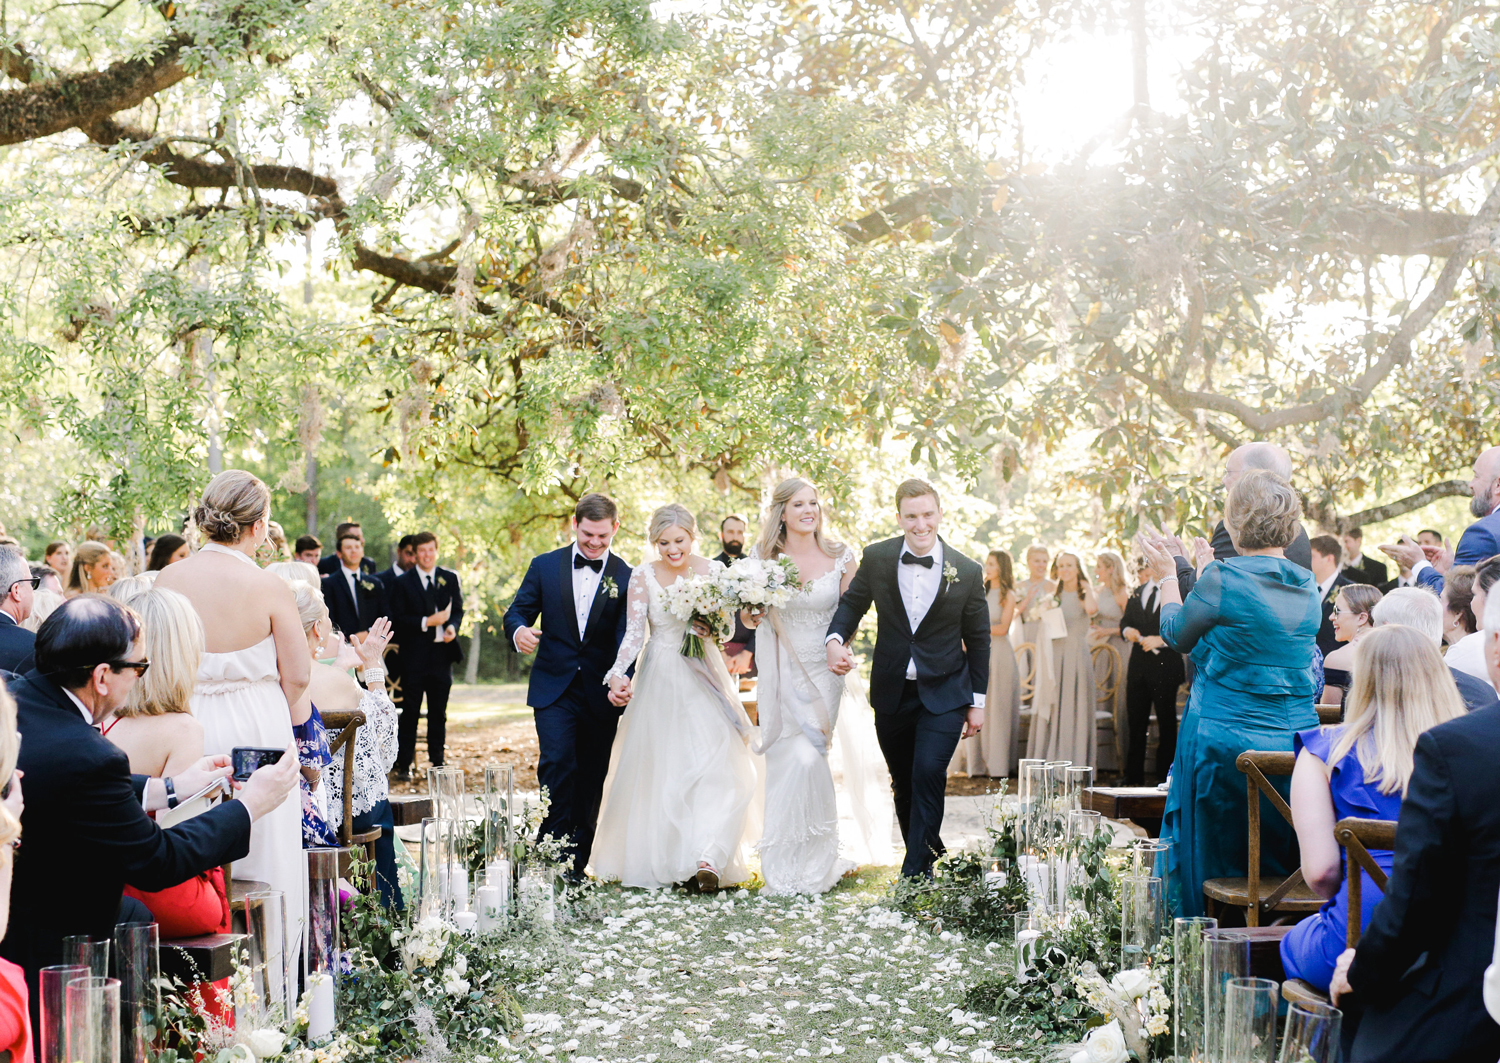 double wedding recessional couples holding hands walking down aisle